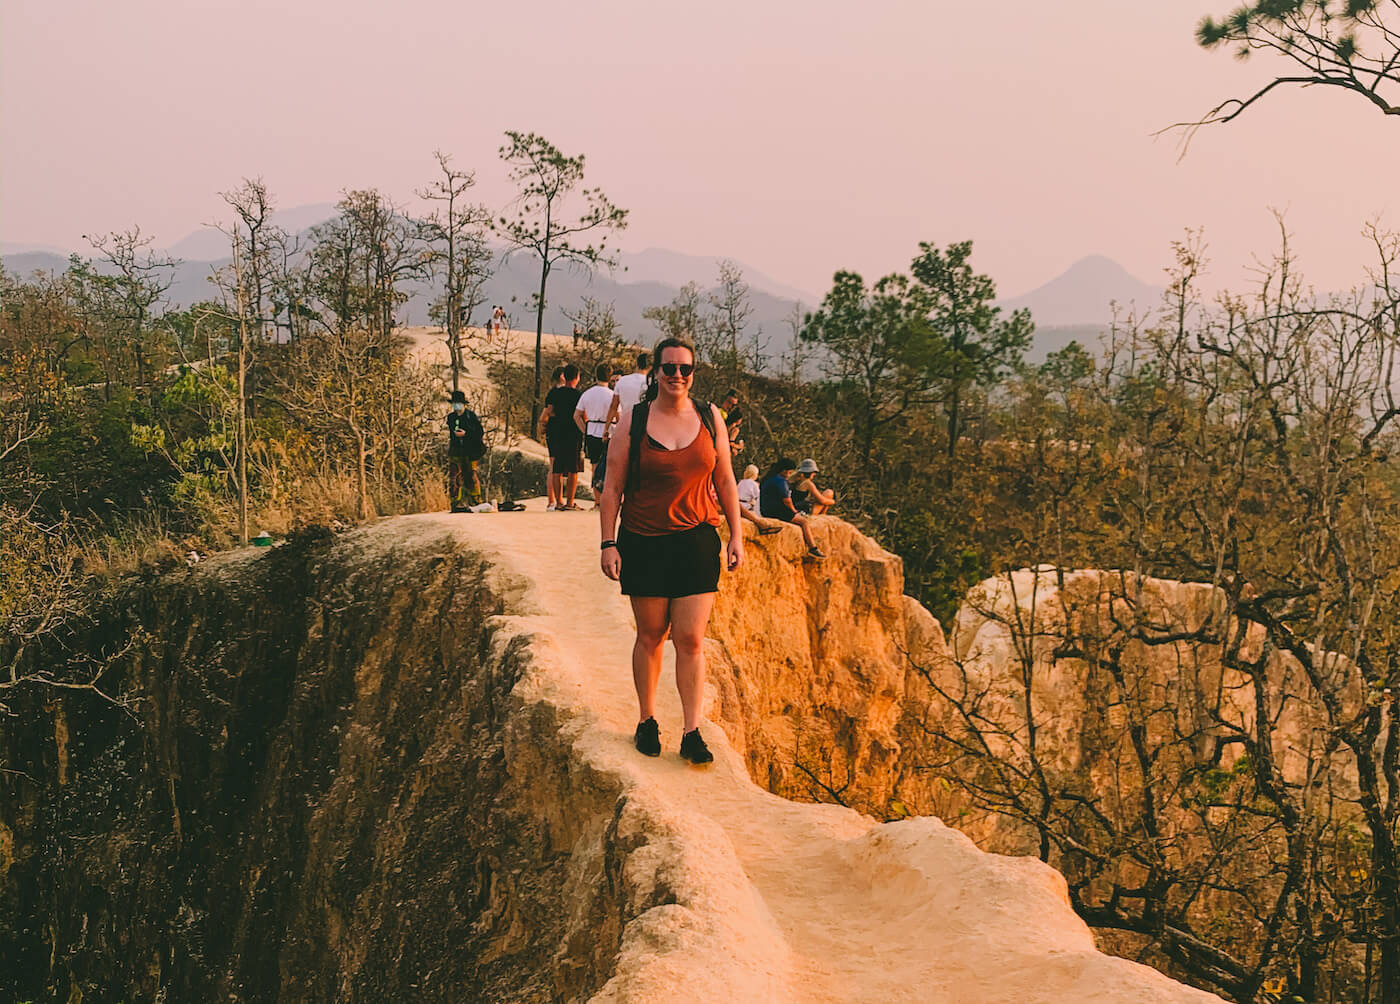 noord thailand tips